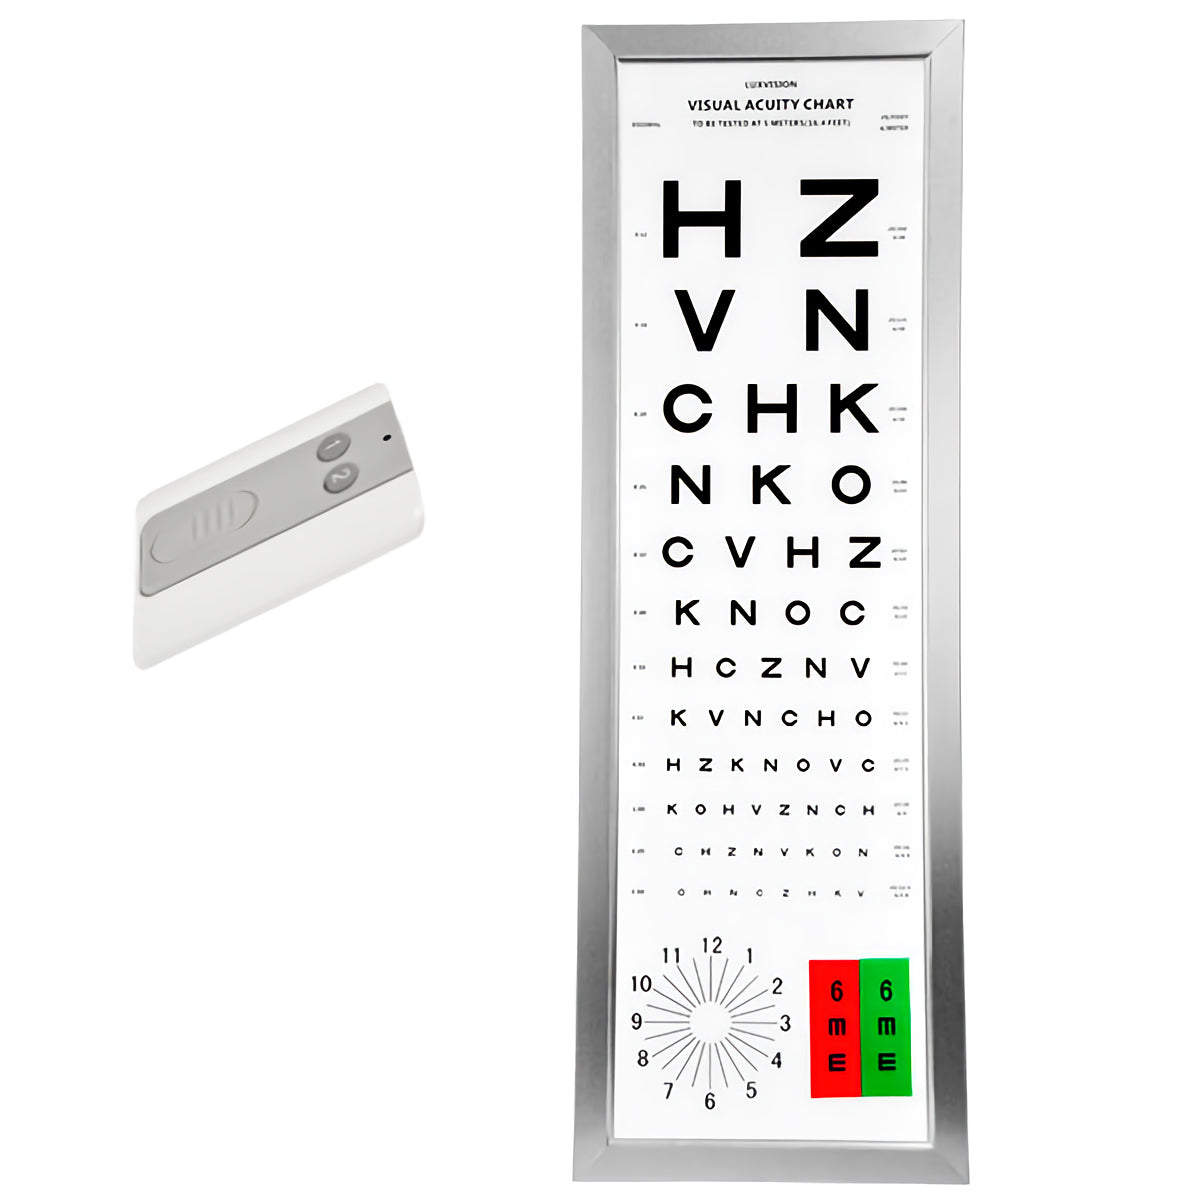 visual acuity chart cp-5000 luxvision - us ophthalmic